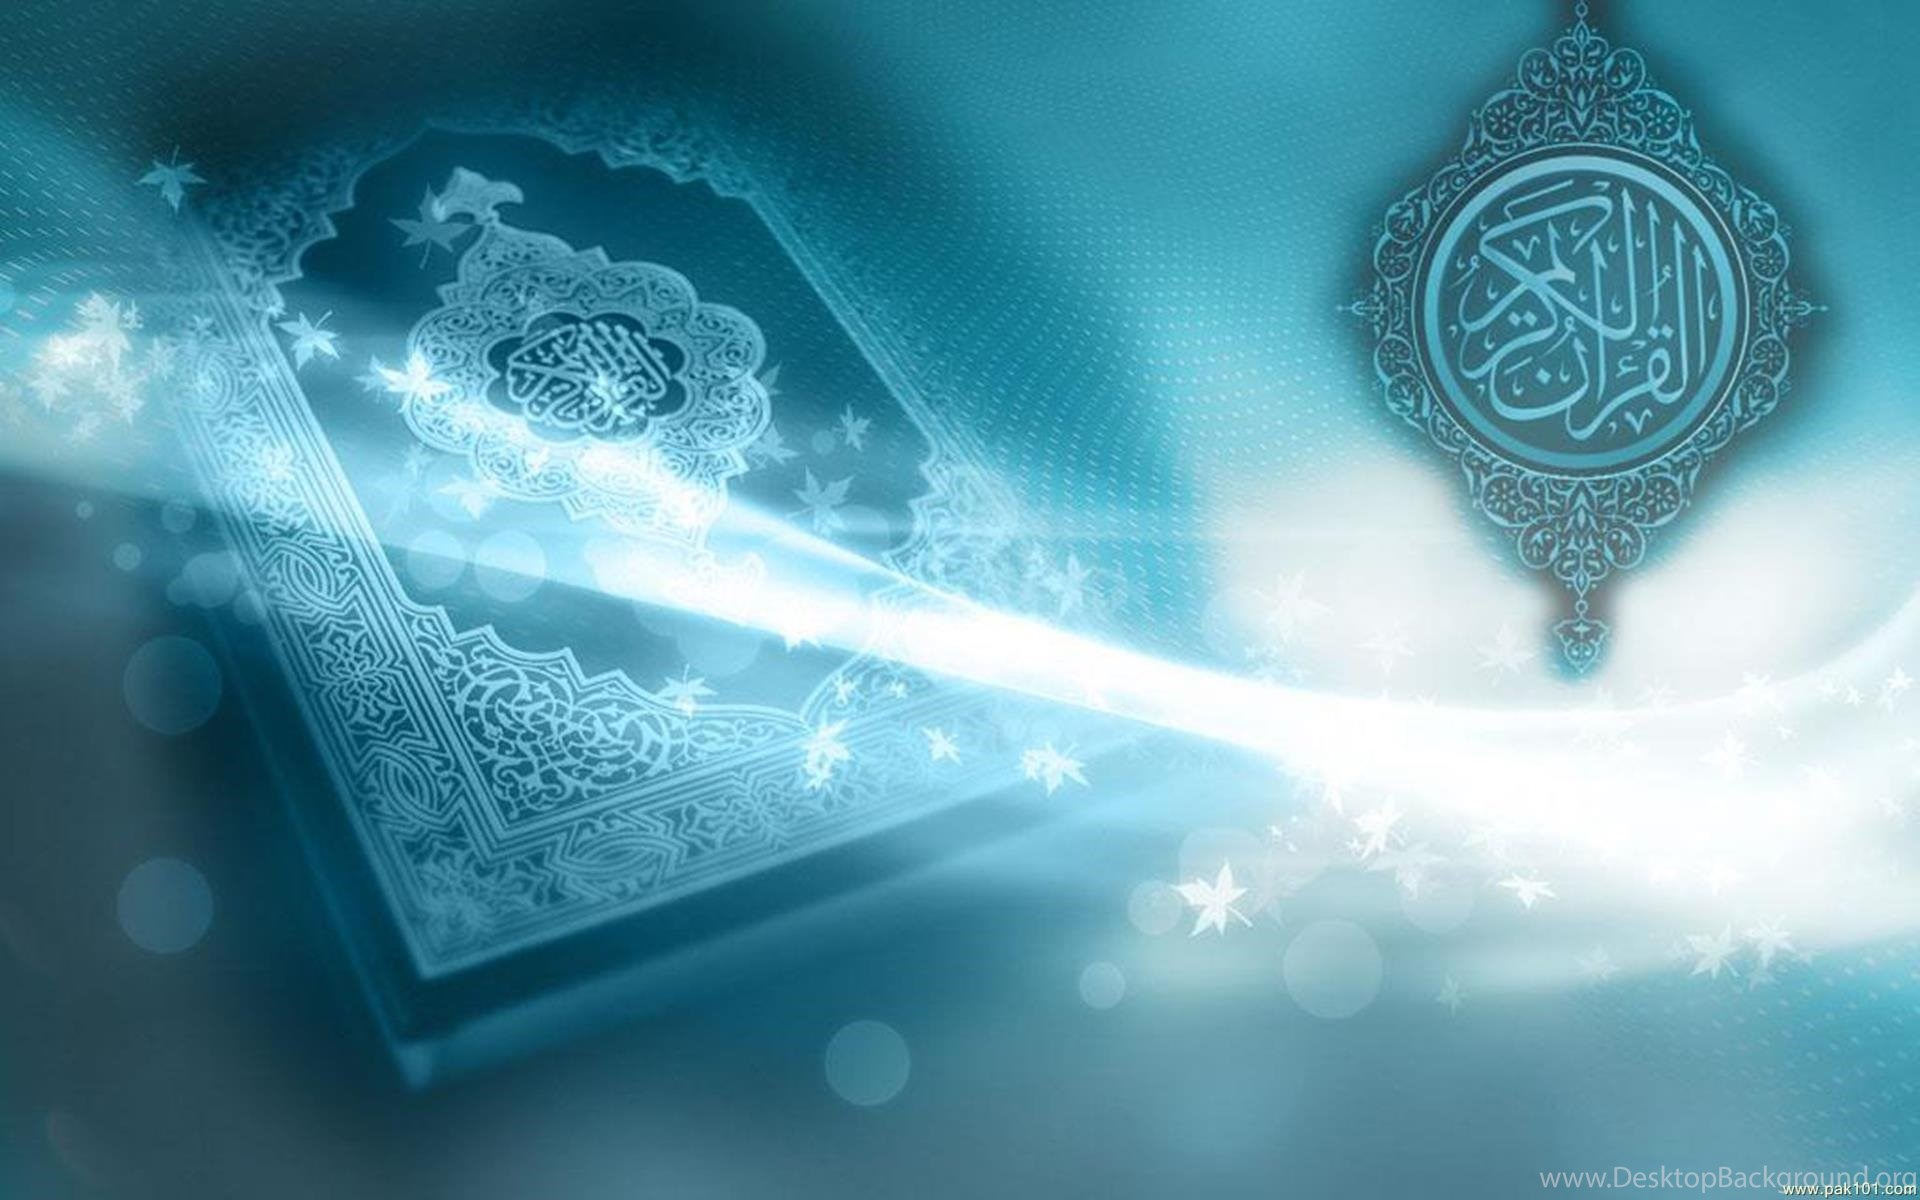 Quran Hd Wallpapers Free Download Desktop Background